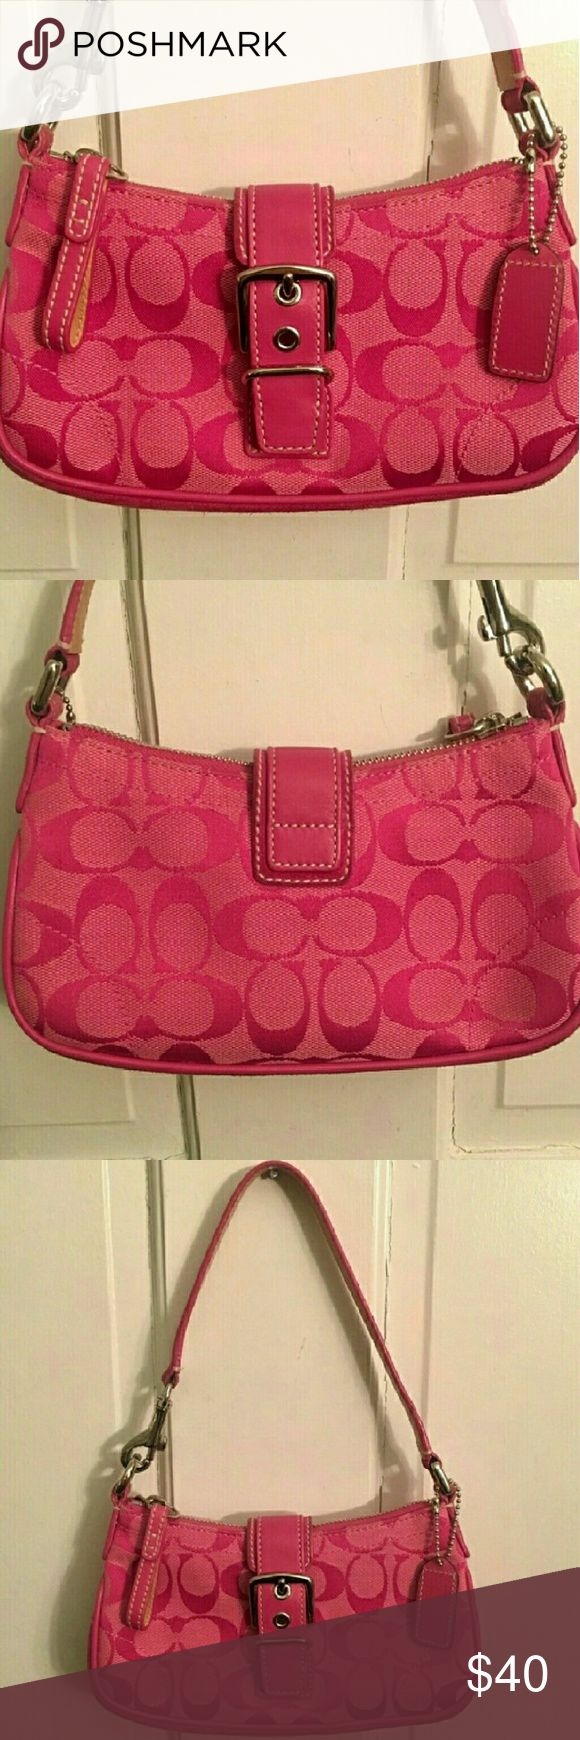 Hot pink coach purse Small pink coach purse. Has Zipper closure aswel as magnetic strap. Used a handful of times but still in great shape. Please note there is a small dot on the inside of the purse as shown in the last photo which was made from a pen. If you have any questions I'm happy to answer. Offers are welcome. Coach Bags Shoulder Bags